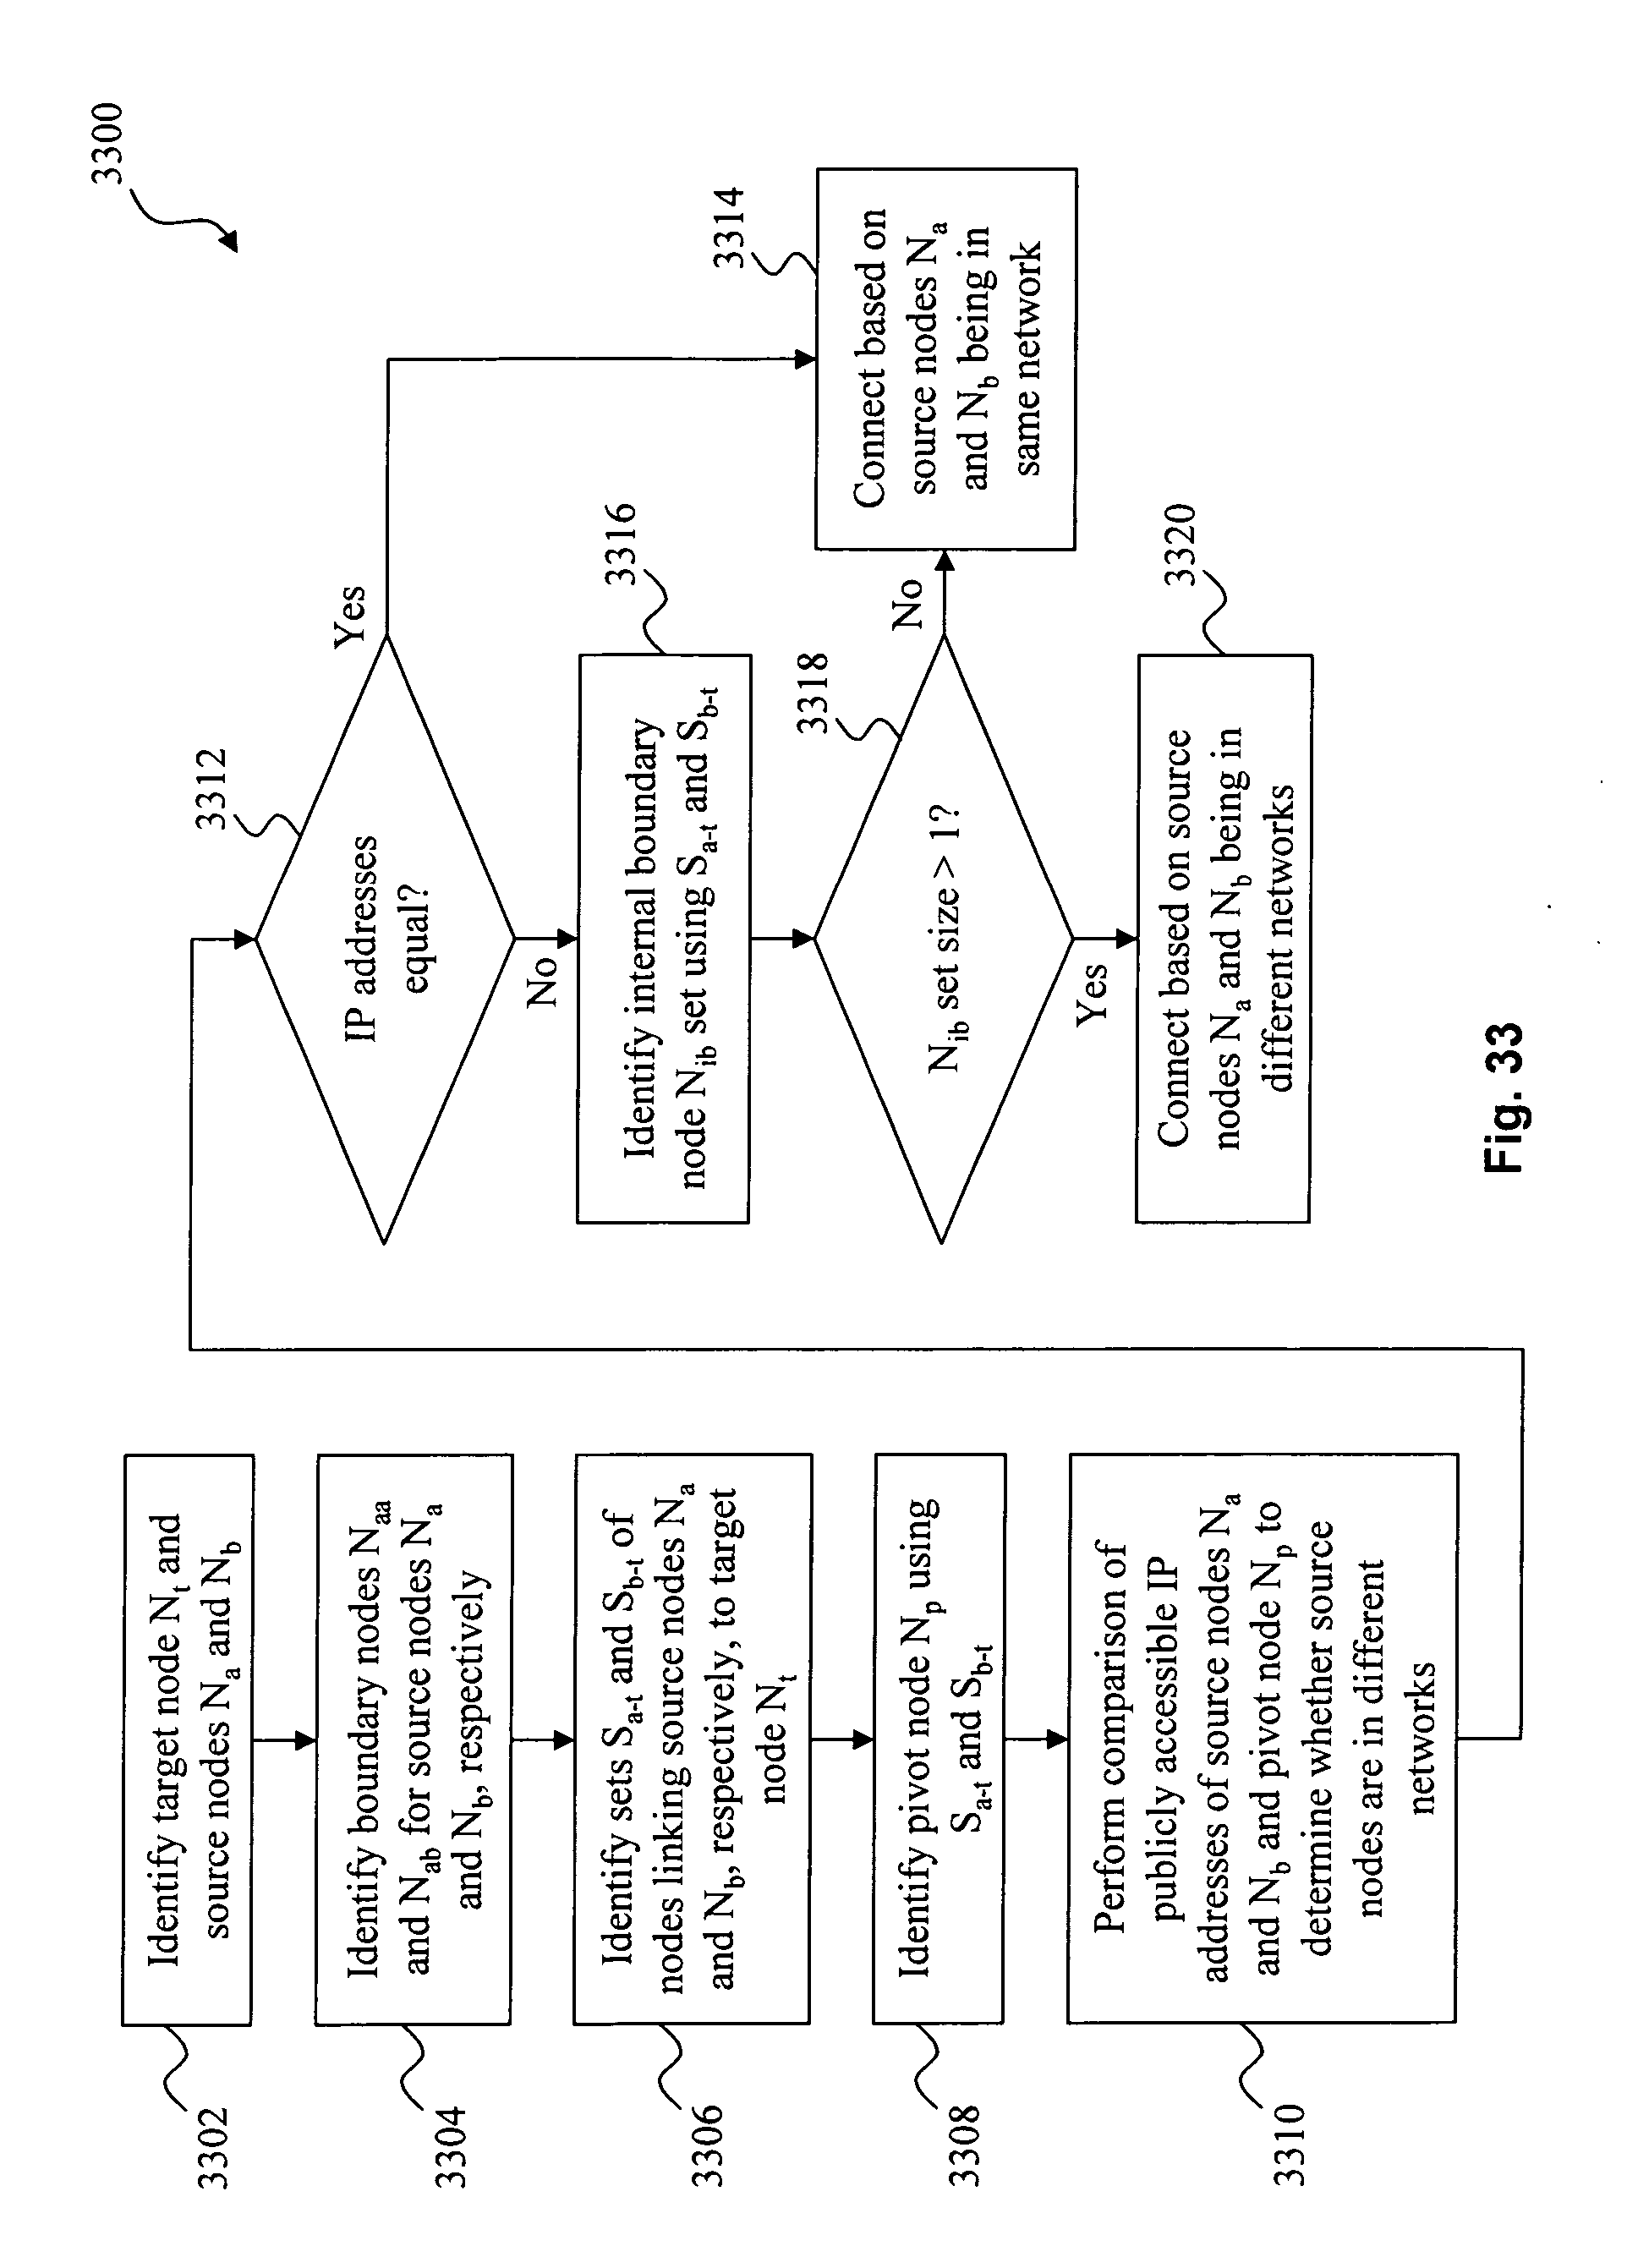 legal uses of peer to peer network essay Chord: a scalable peer-to-peer lookup service for internet chord uses a variant of consistent hashing though chord does not exploit network locality as well.